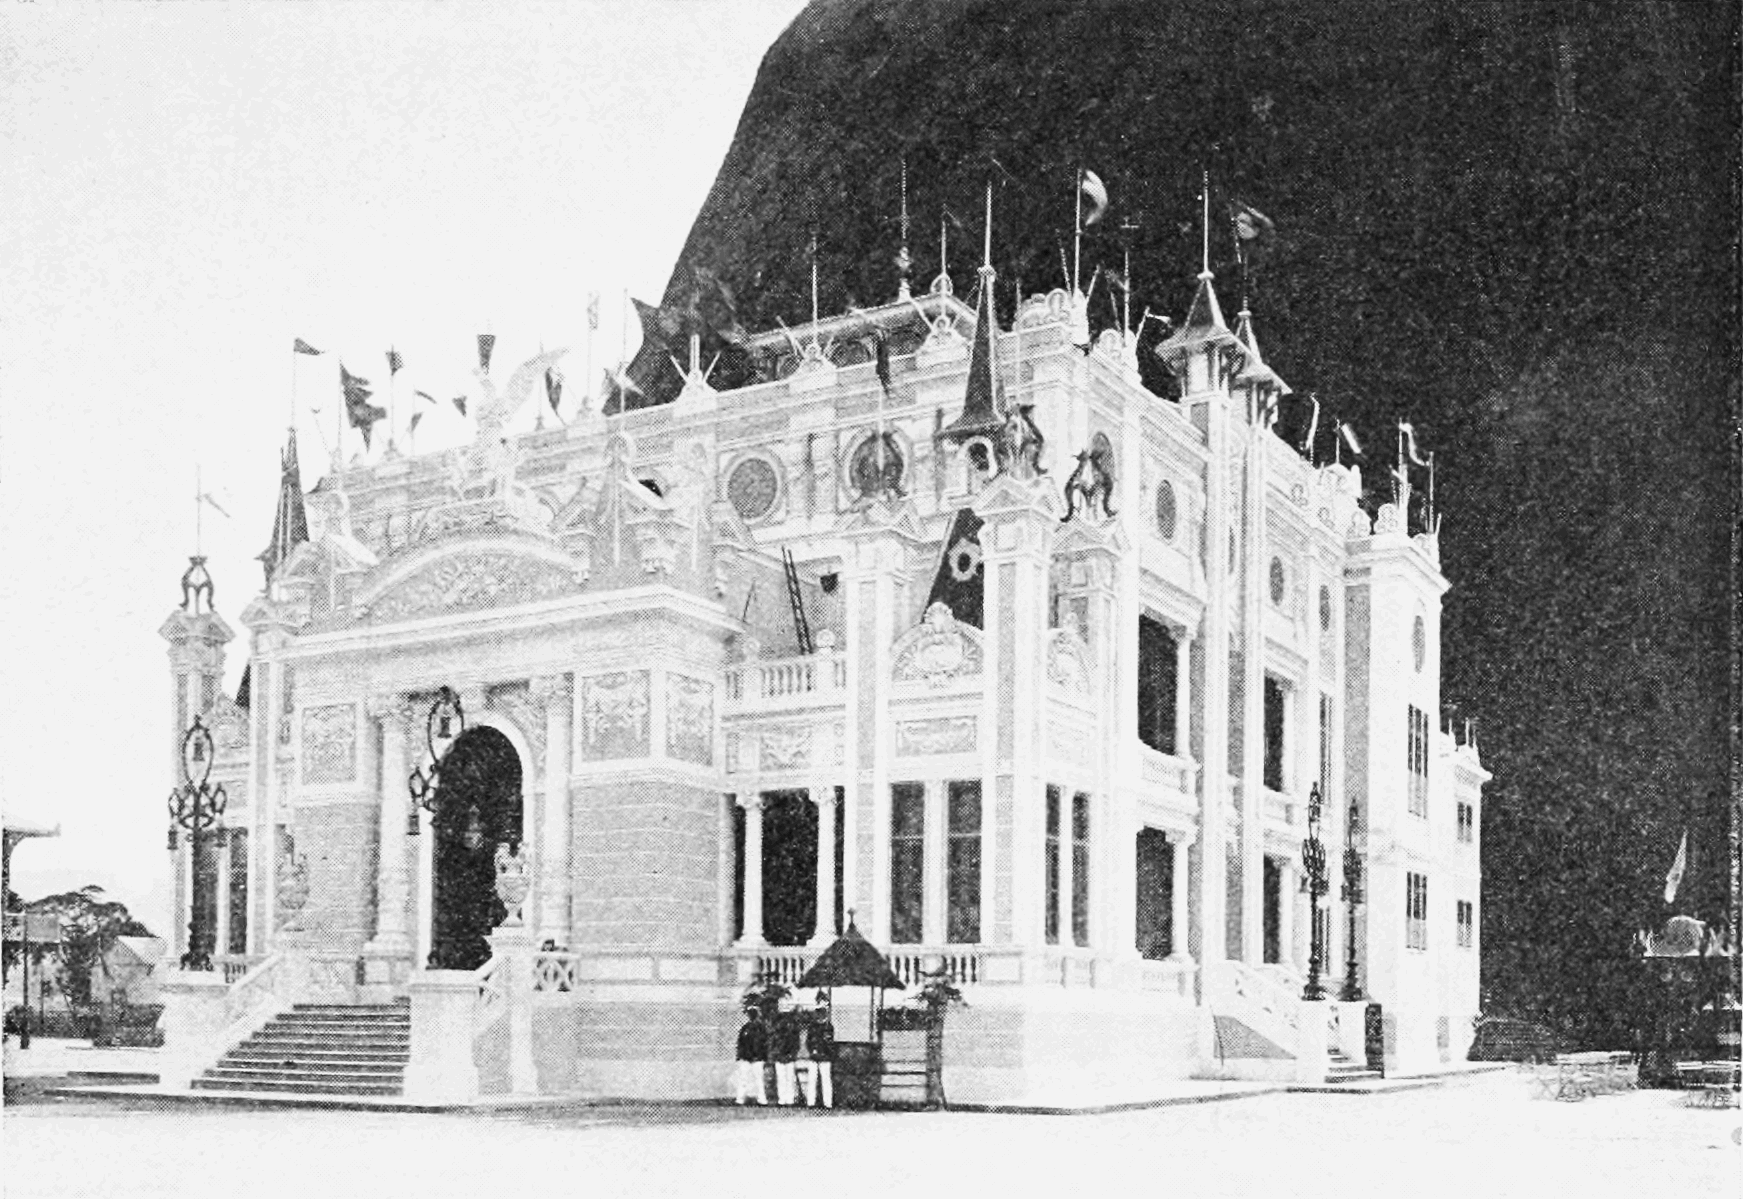 PSM V74 D111 The theater at the rio de janeiro exposition 1908.png